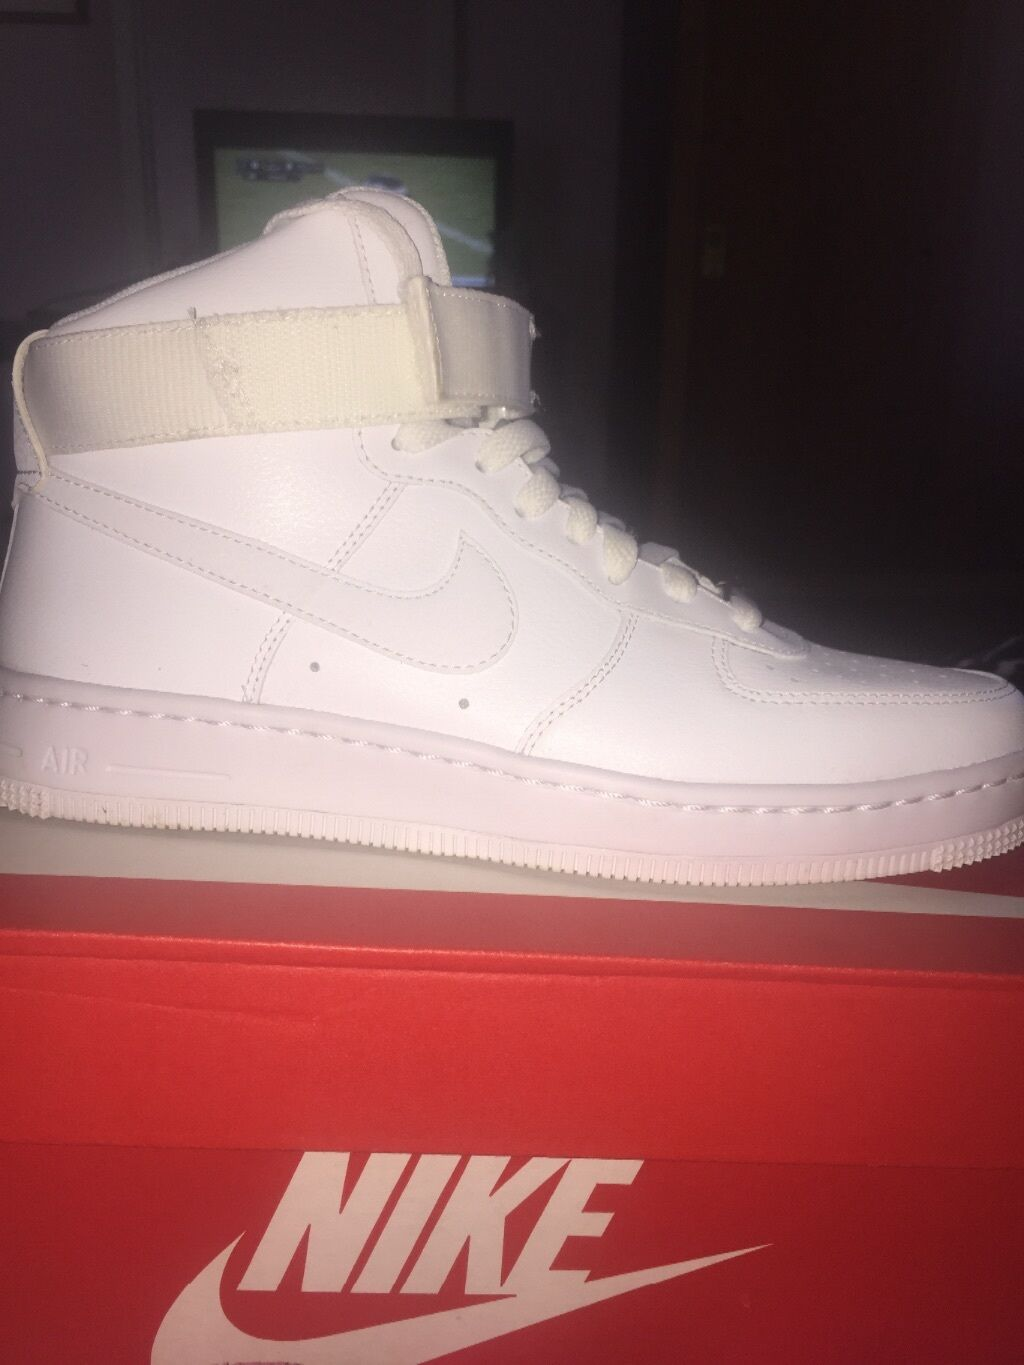 Womens Nike Air force 1-White size 8.5